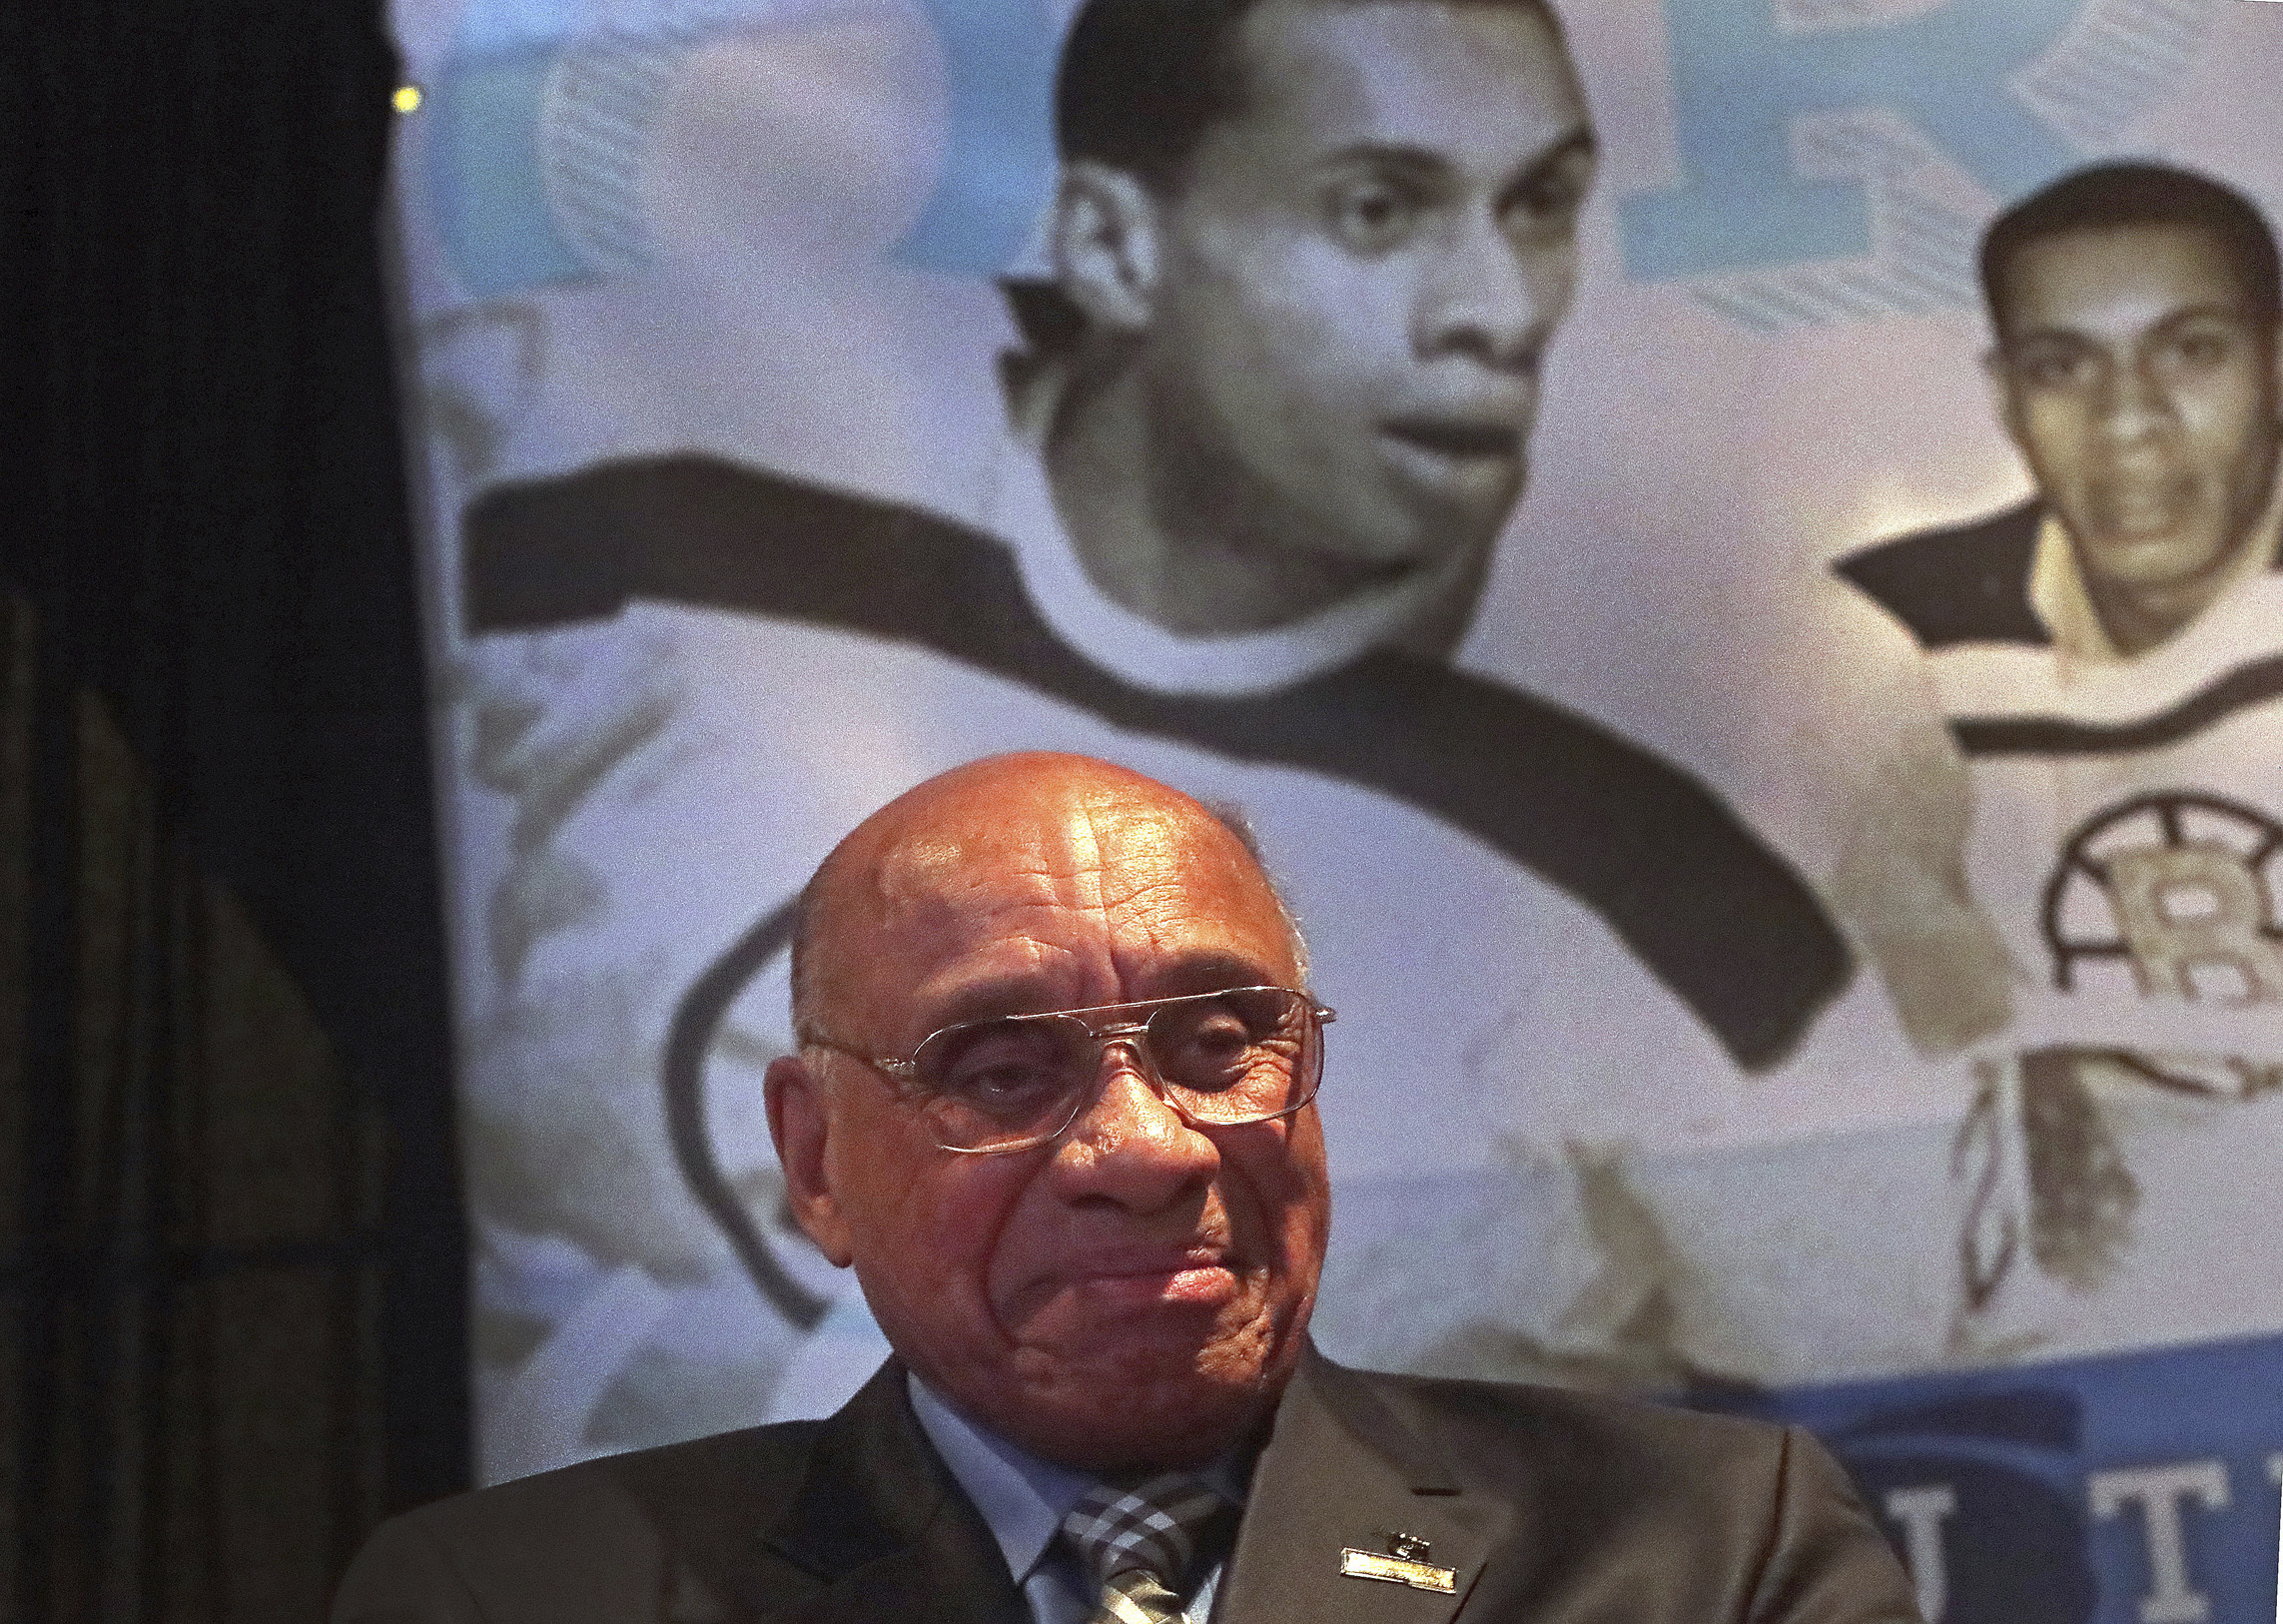 National Hockey League Diversity Ambassador Willie O´Ree, the first black player in the NHL, was honored during a ceremony in Boston on Wednesday, Jan. 17, 2018. The ceremony was attended by Boston Mayor Marty Walsh, NHL commissioner Gary Bettman and Boston Bruins Chief Executive Officer Charlie Jacobs, who joined together at TD Garden to announce that the Boston Parks and Recreation Department´s street hockey rink at Smith Field in Allston-Brighton is named in honor of O´Ree. (Barry Chin/The Boston Globe via AP)